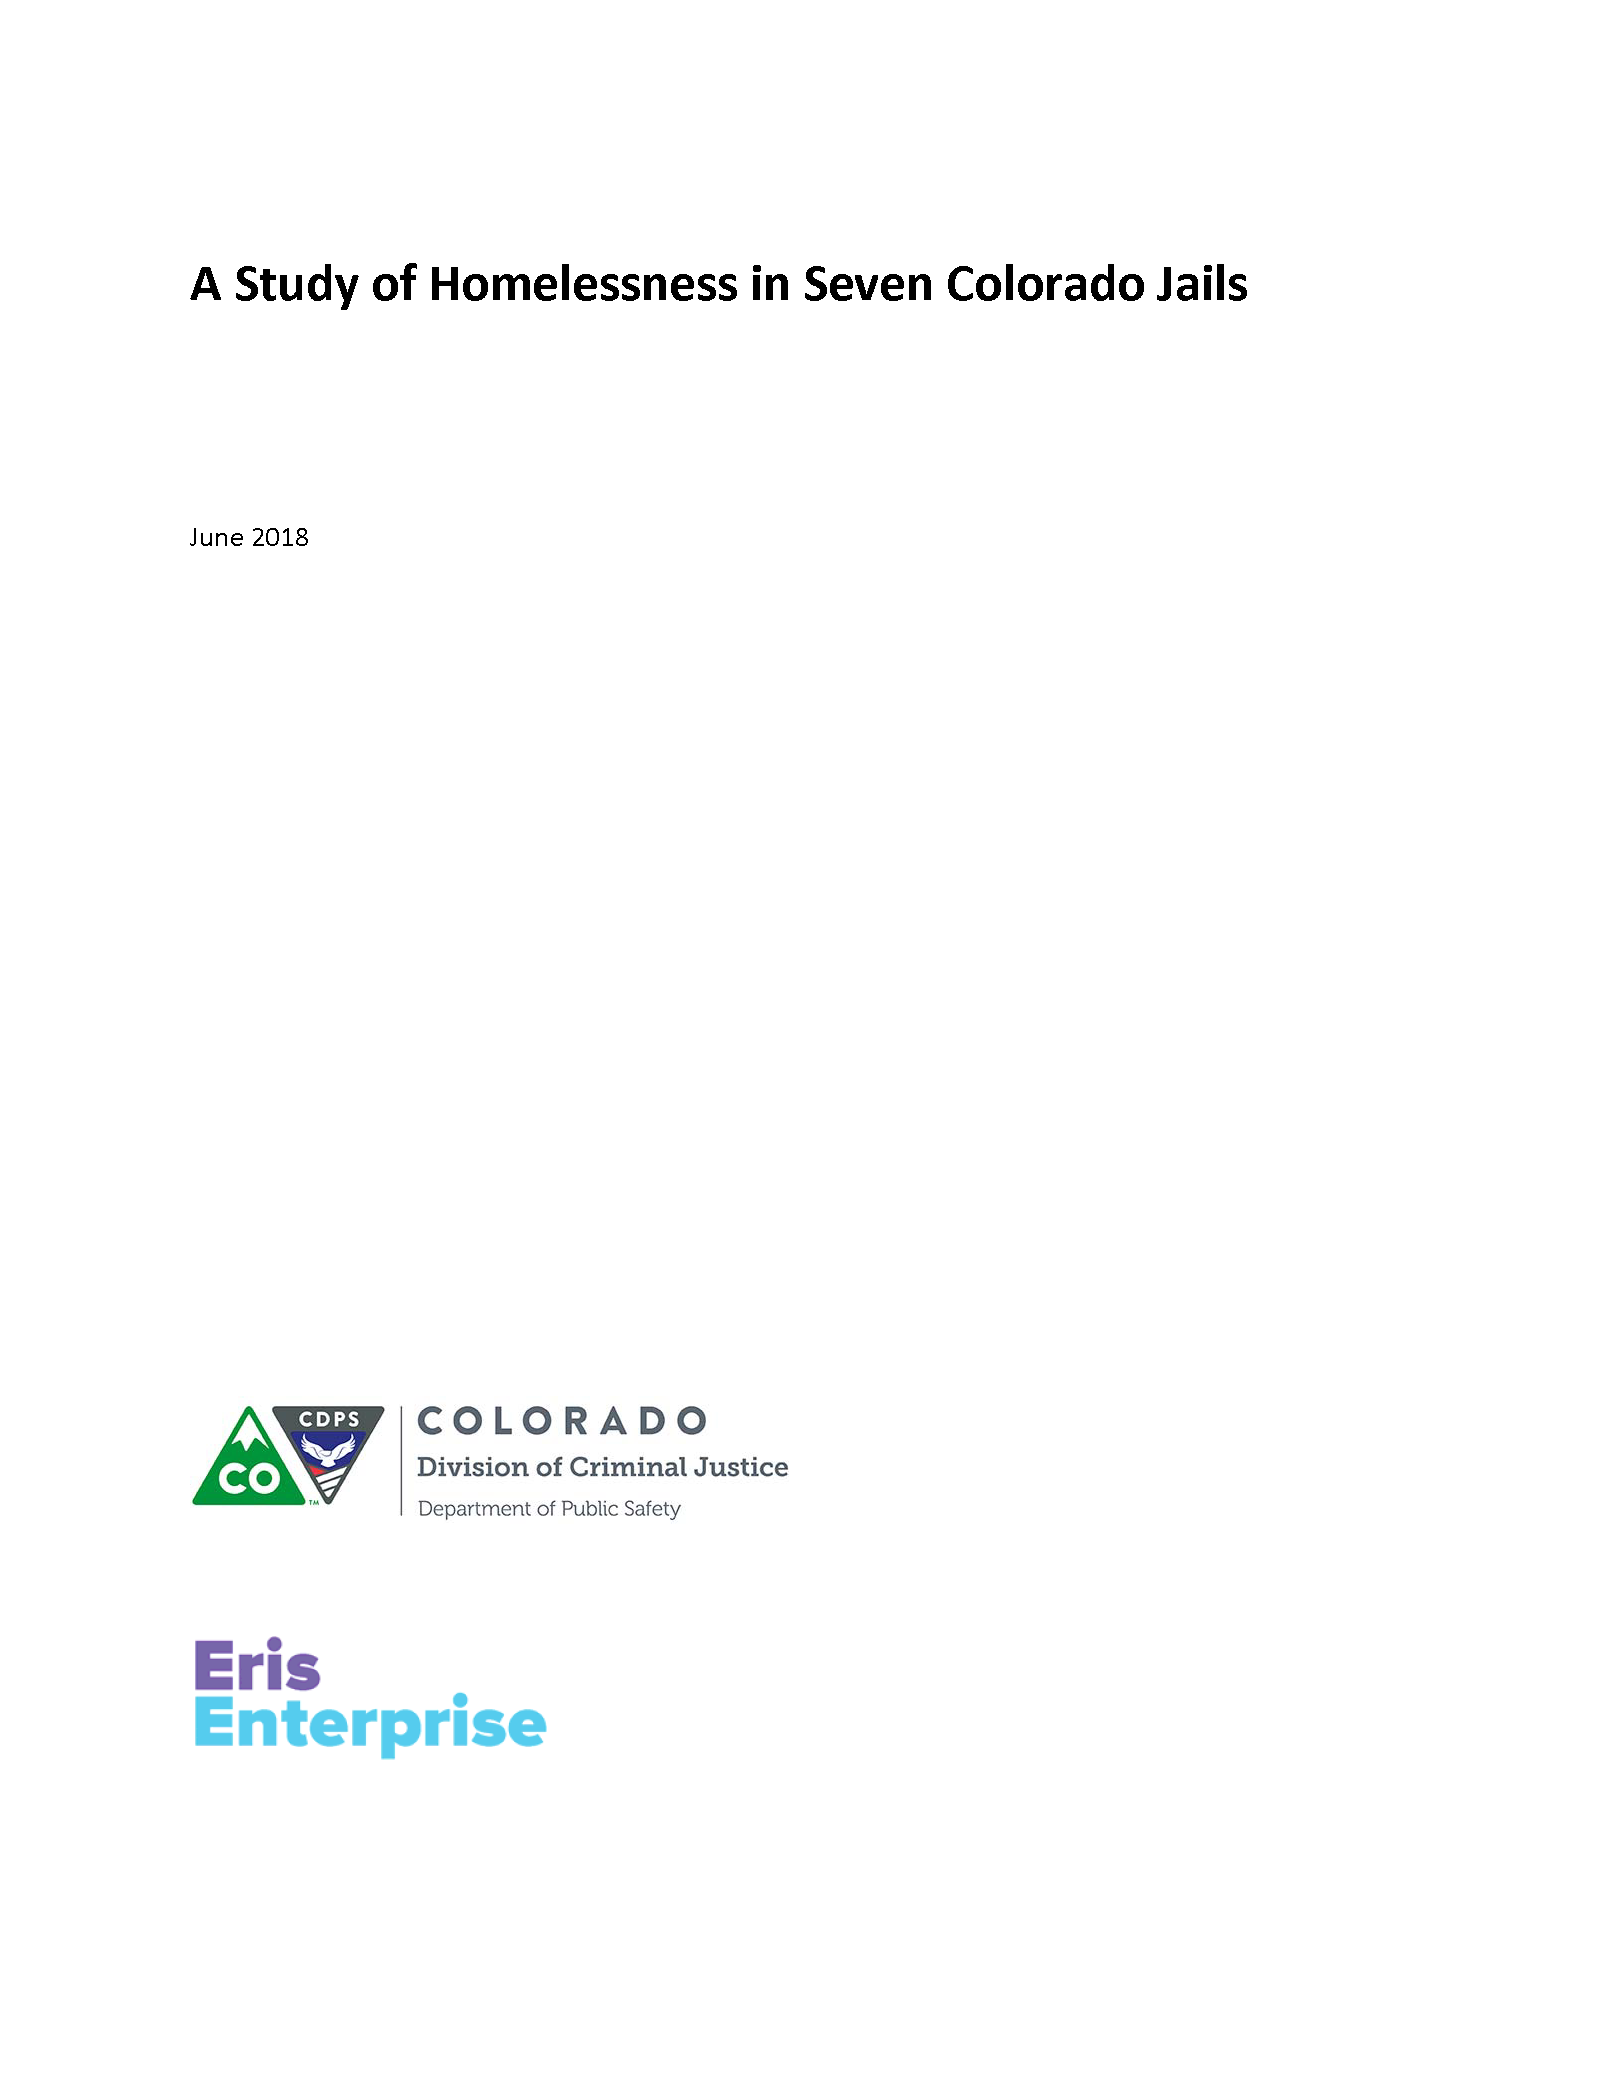 A Study of Homelessness in Seven Colorado Jails (June 2018)